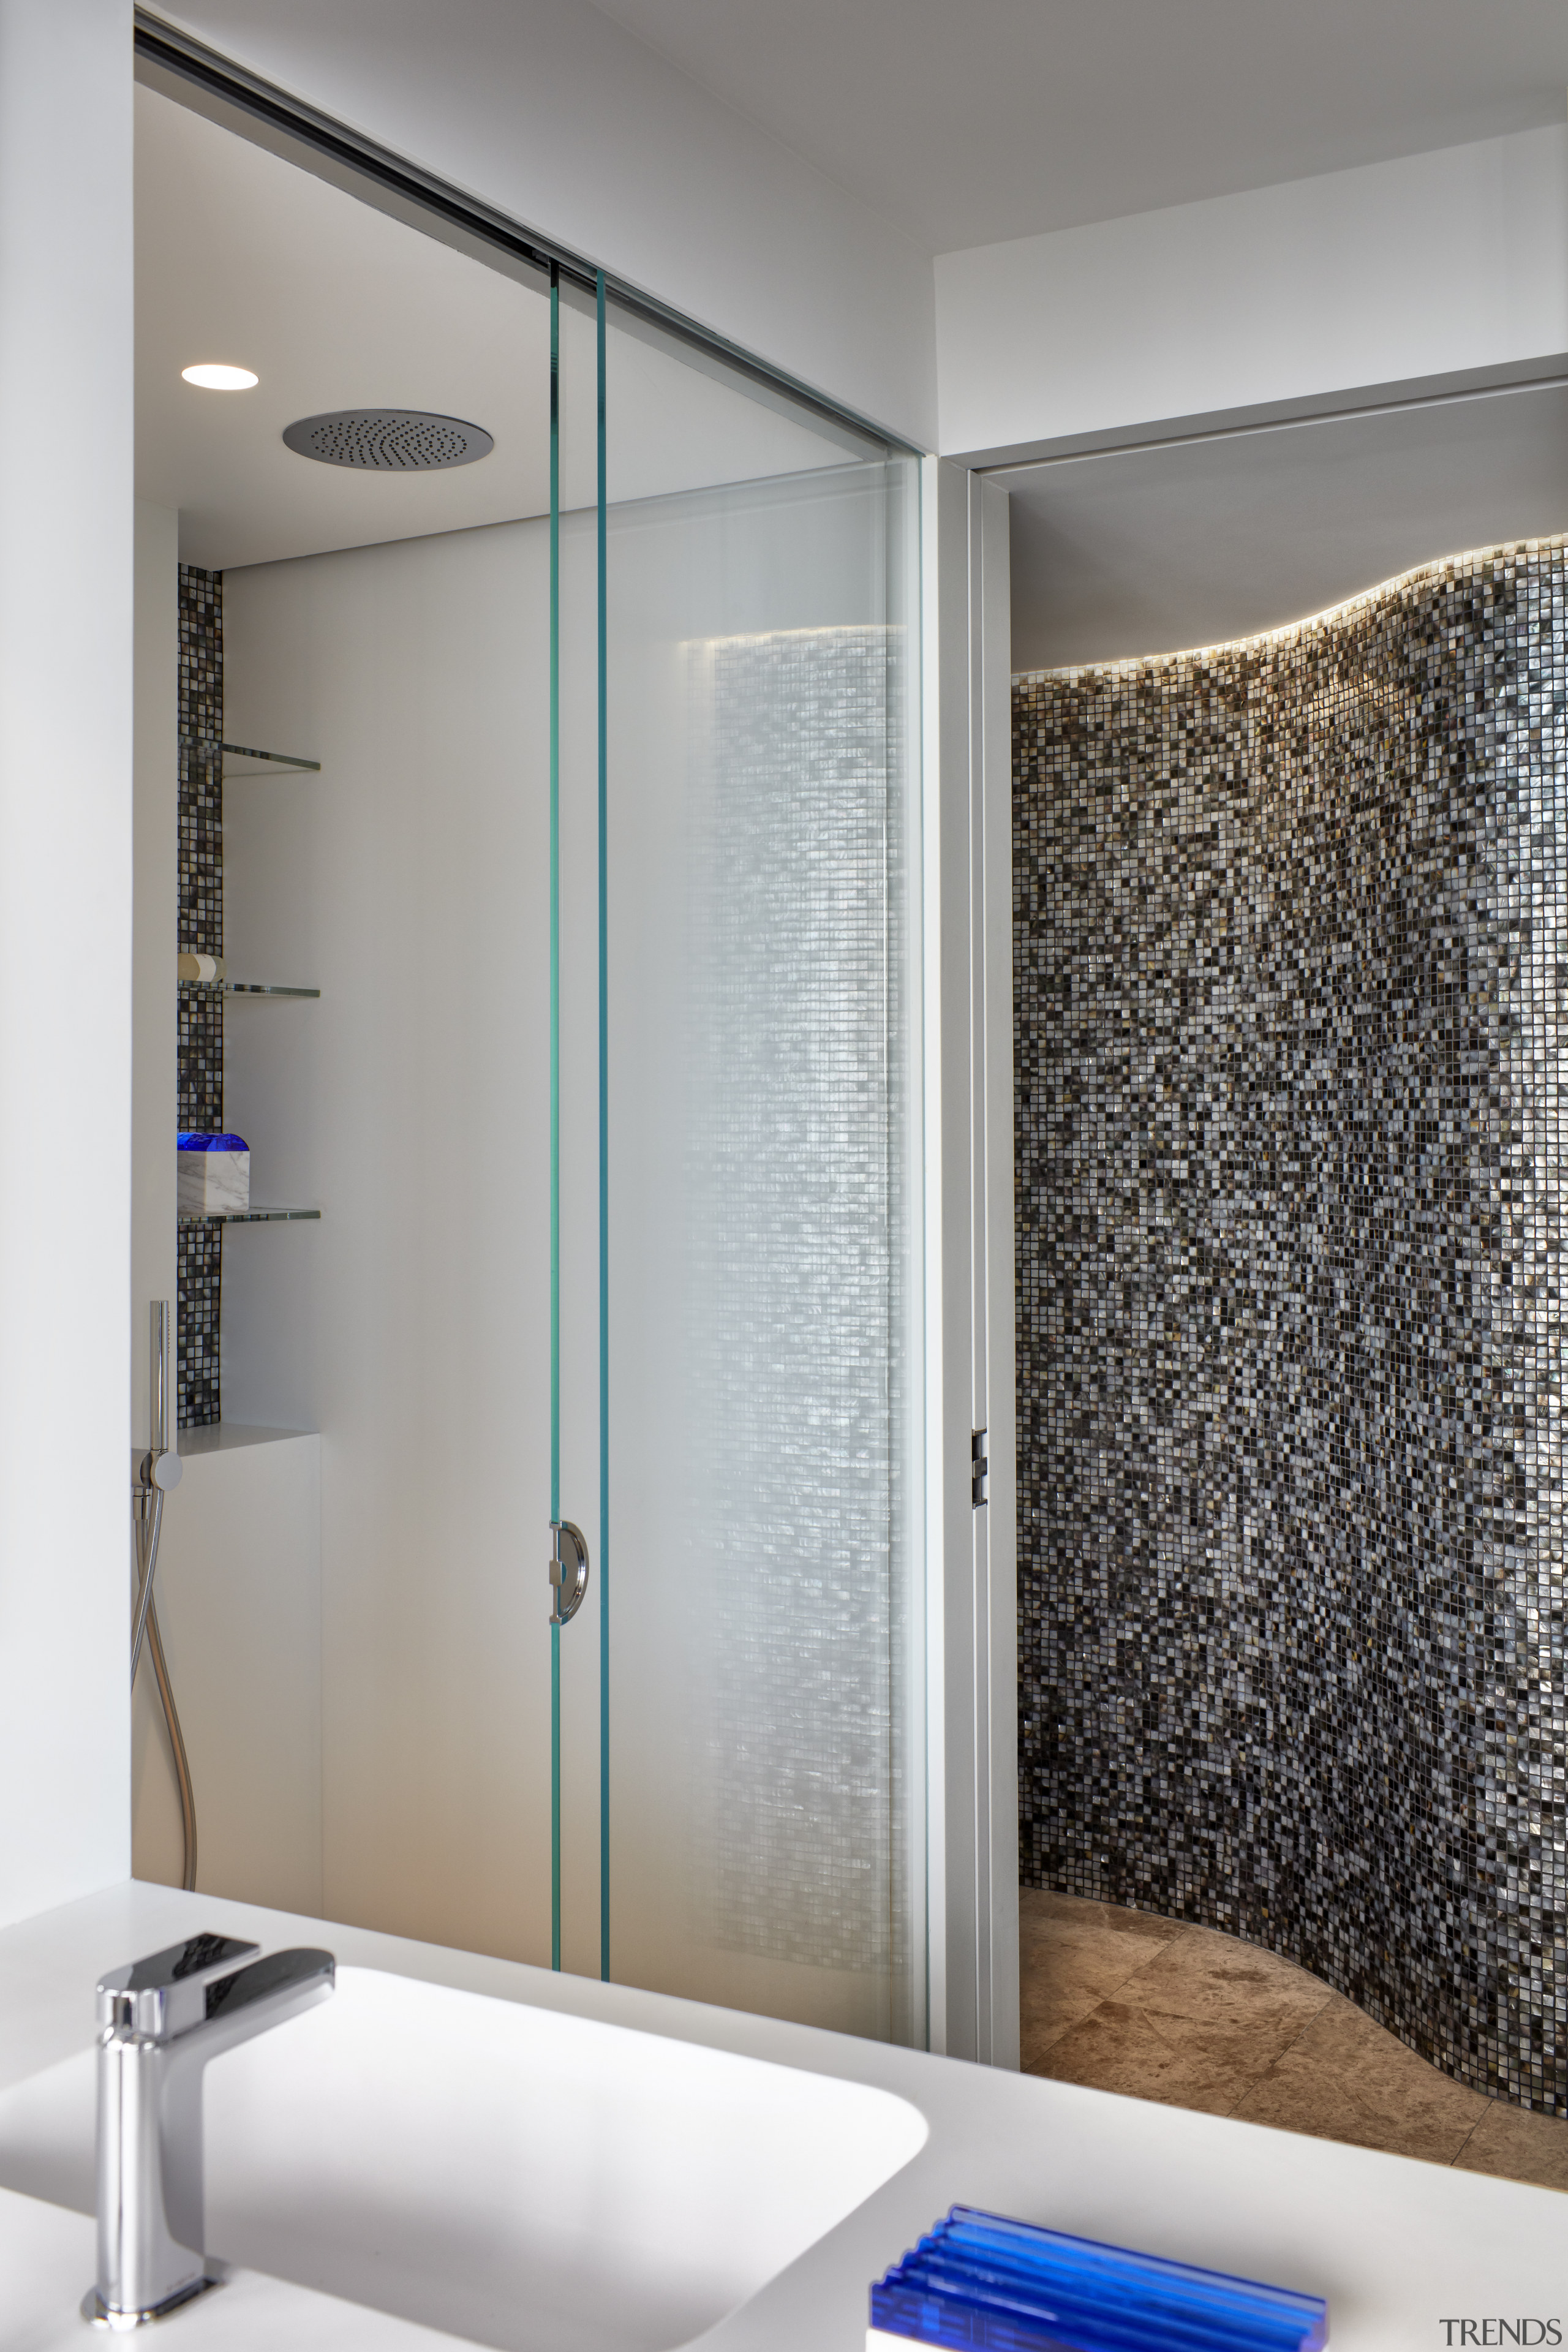 A curving wall of real Mother of Pearl architecture, bathroom, furniture, glass, house, interior design, plumbing fixture, shower, tile, wall, gray.Archer Design